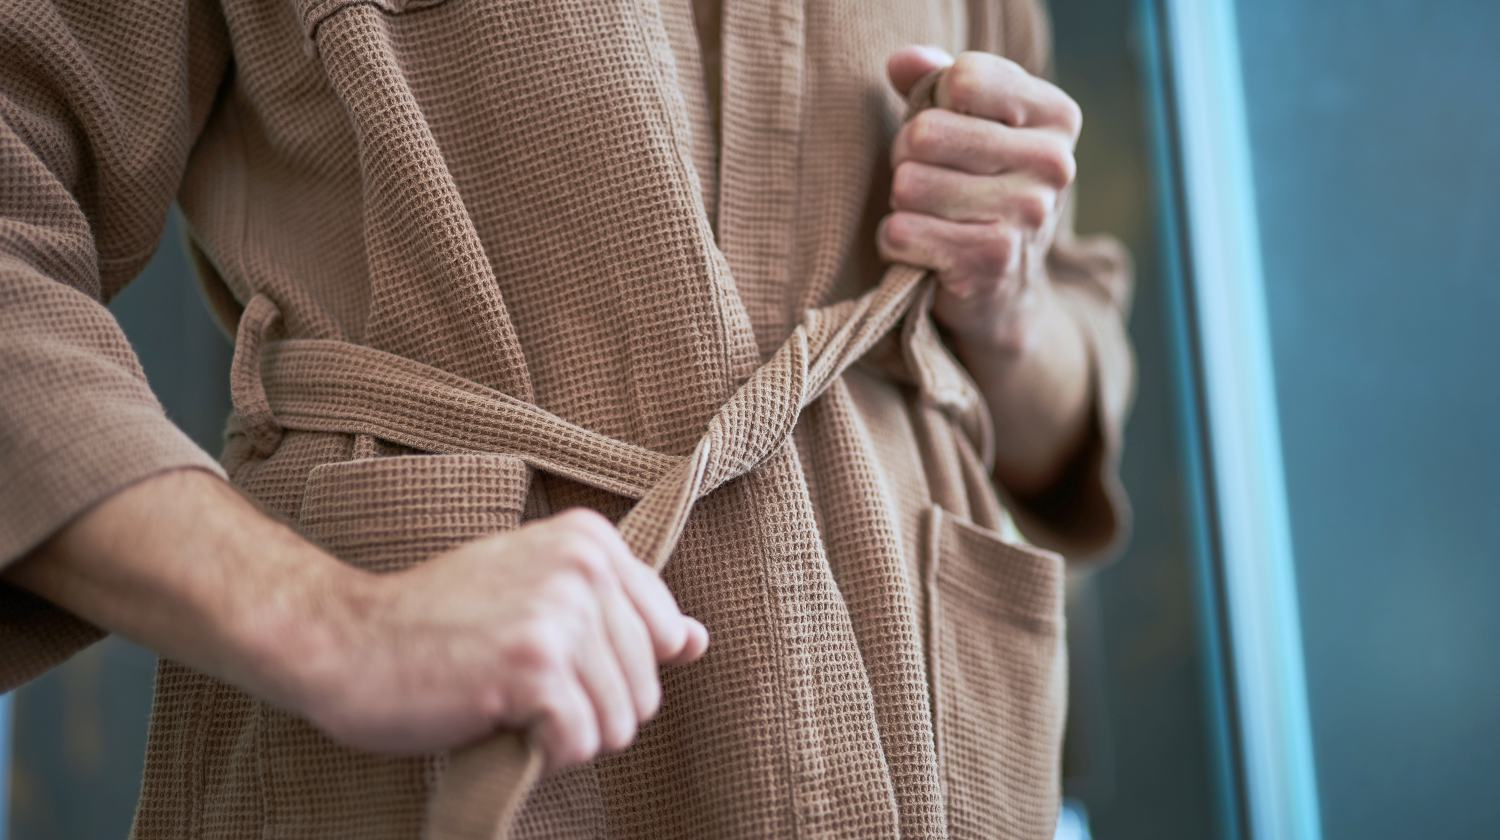 What Is The String Inside A Robe For